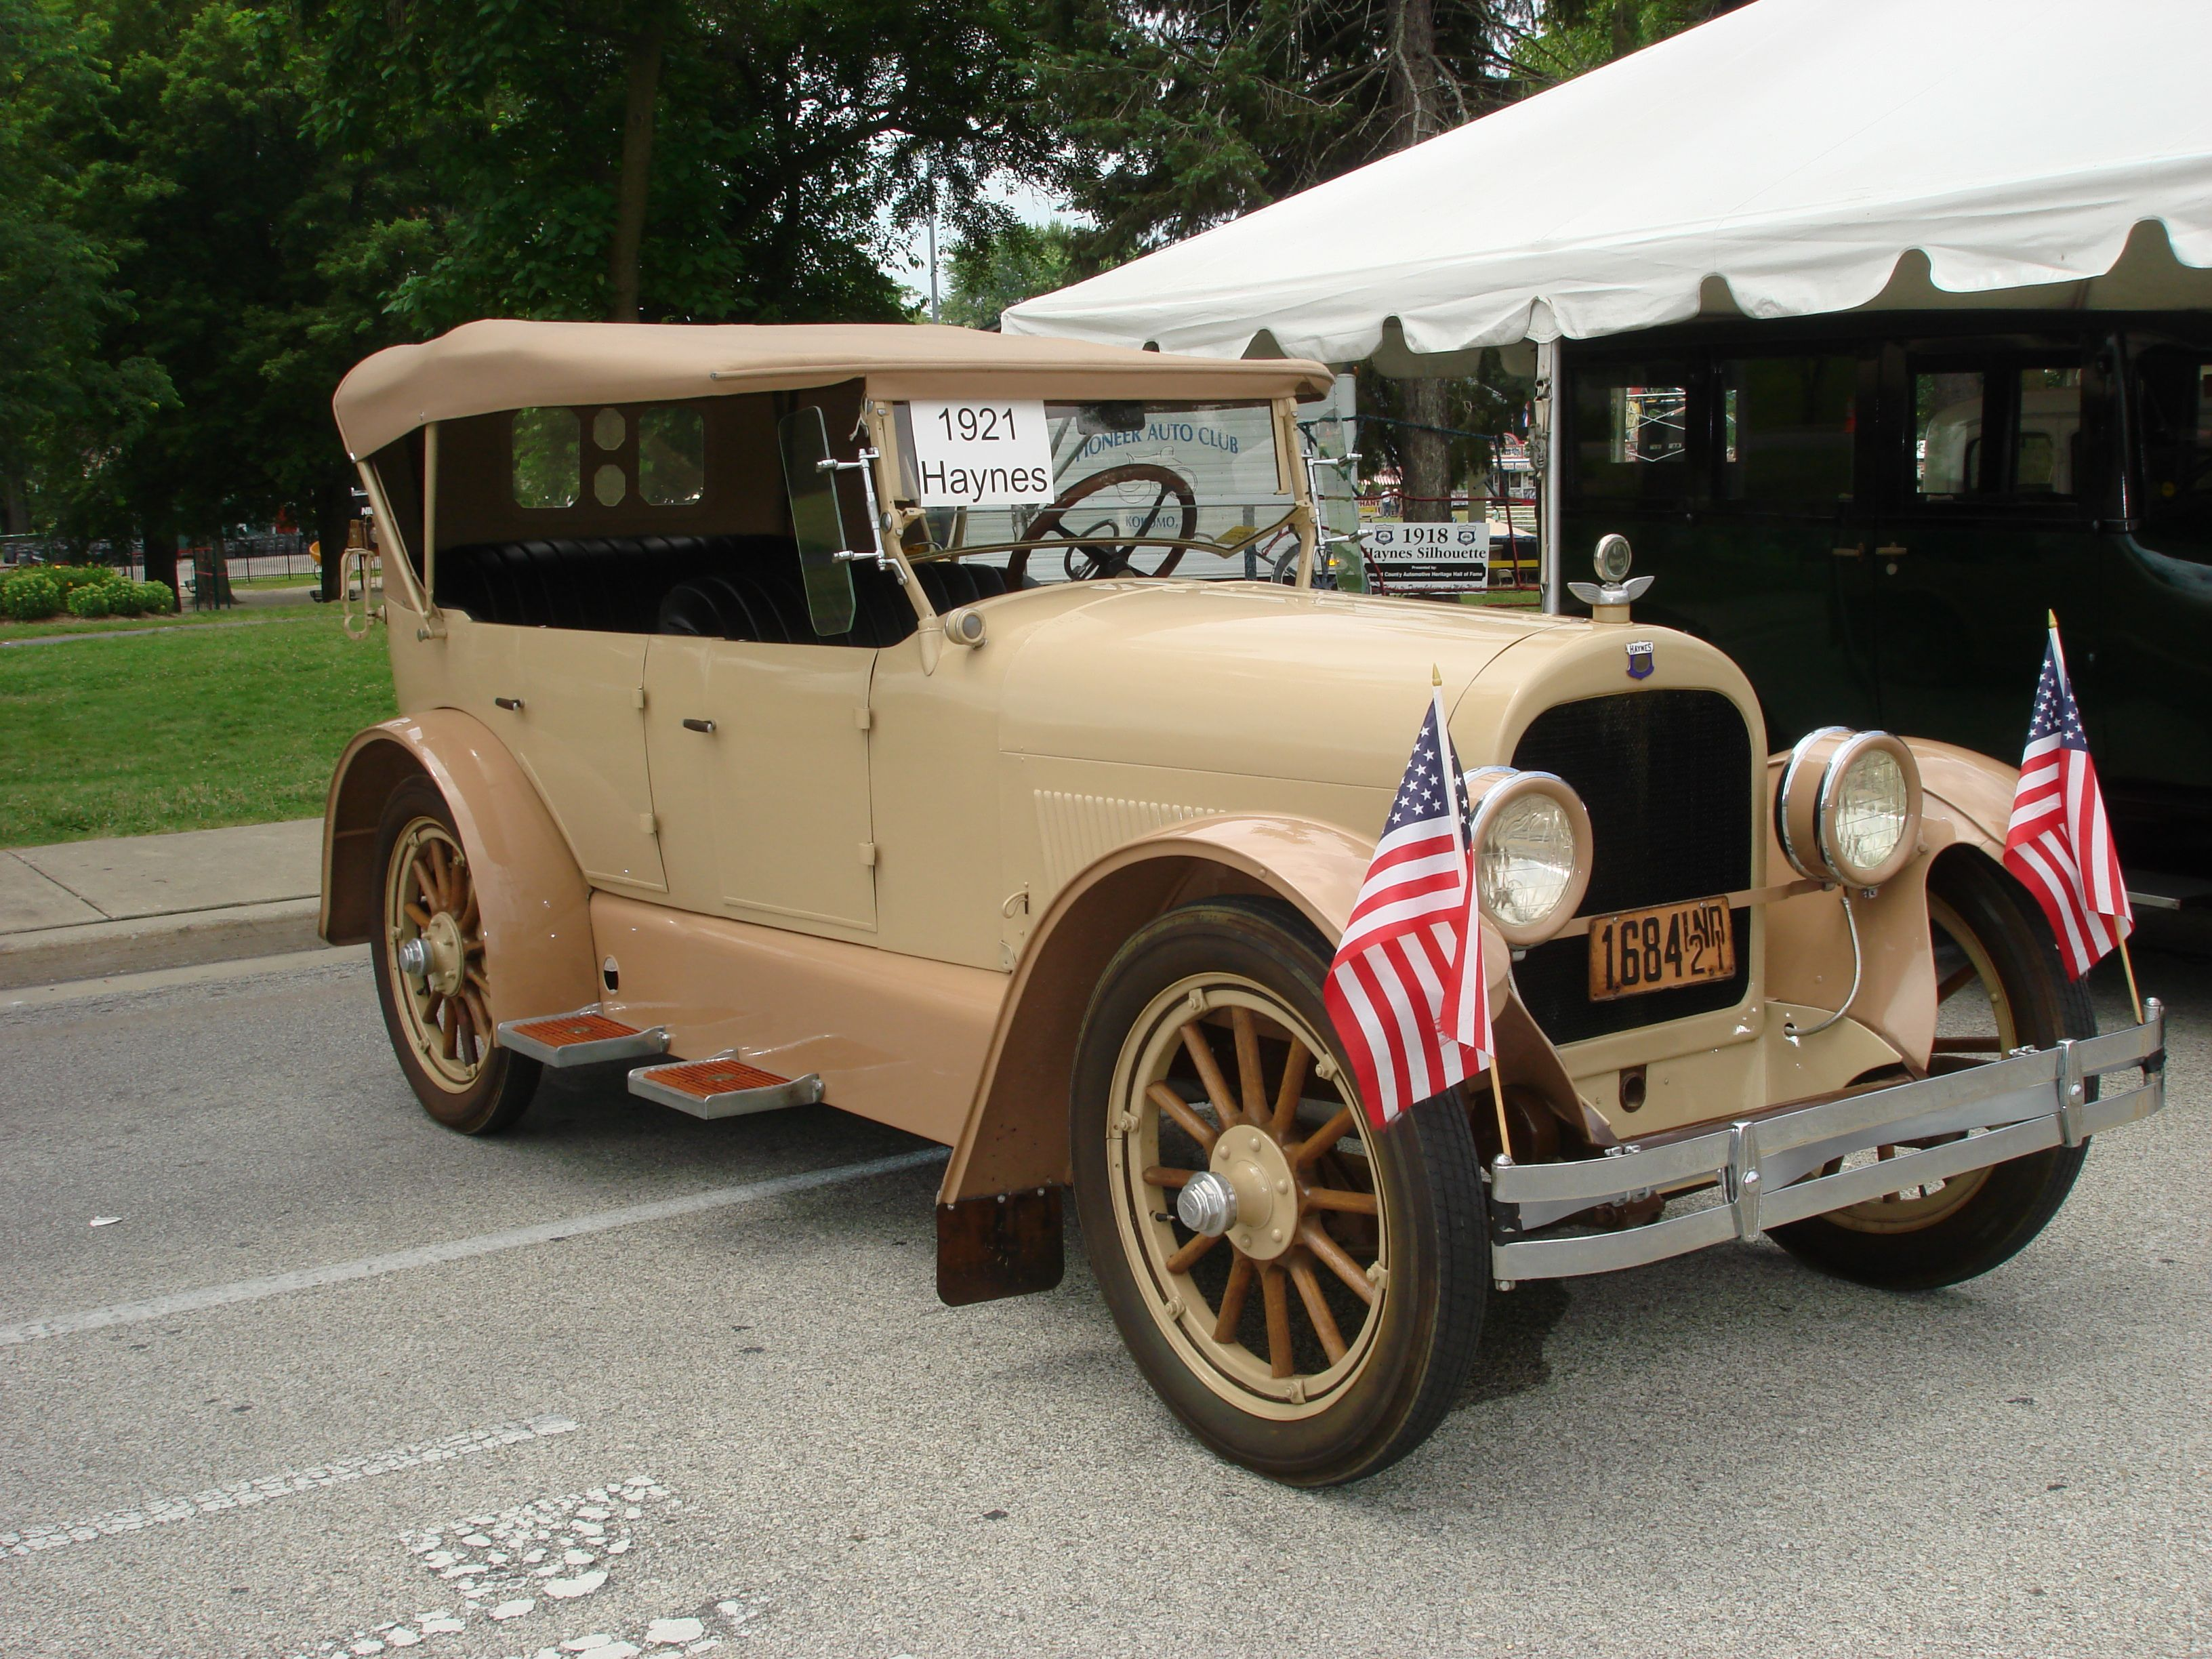 4th of July, 2013. 1921 Haynes. Owned by Dale Etherington